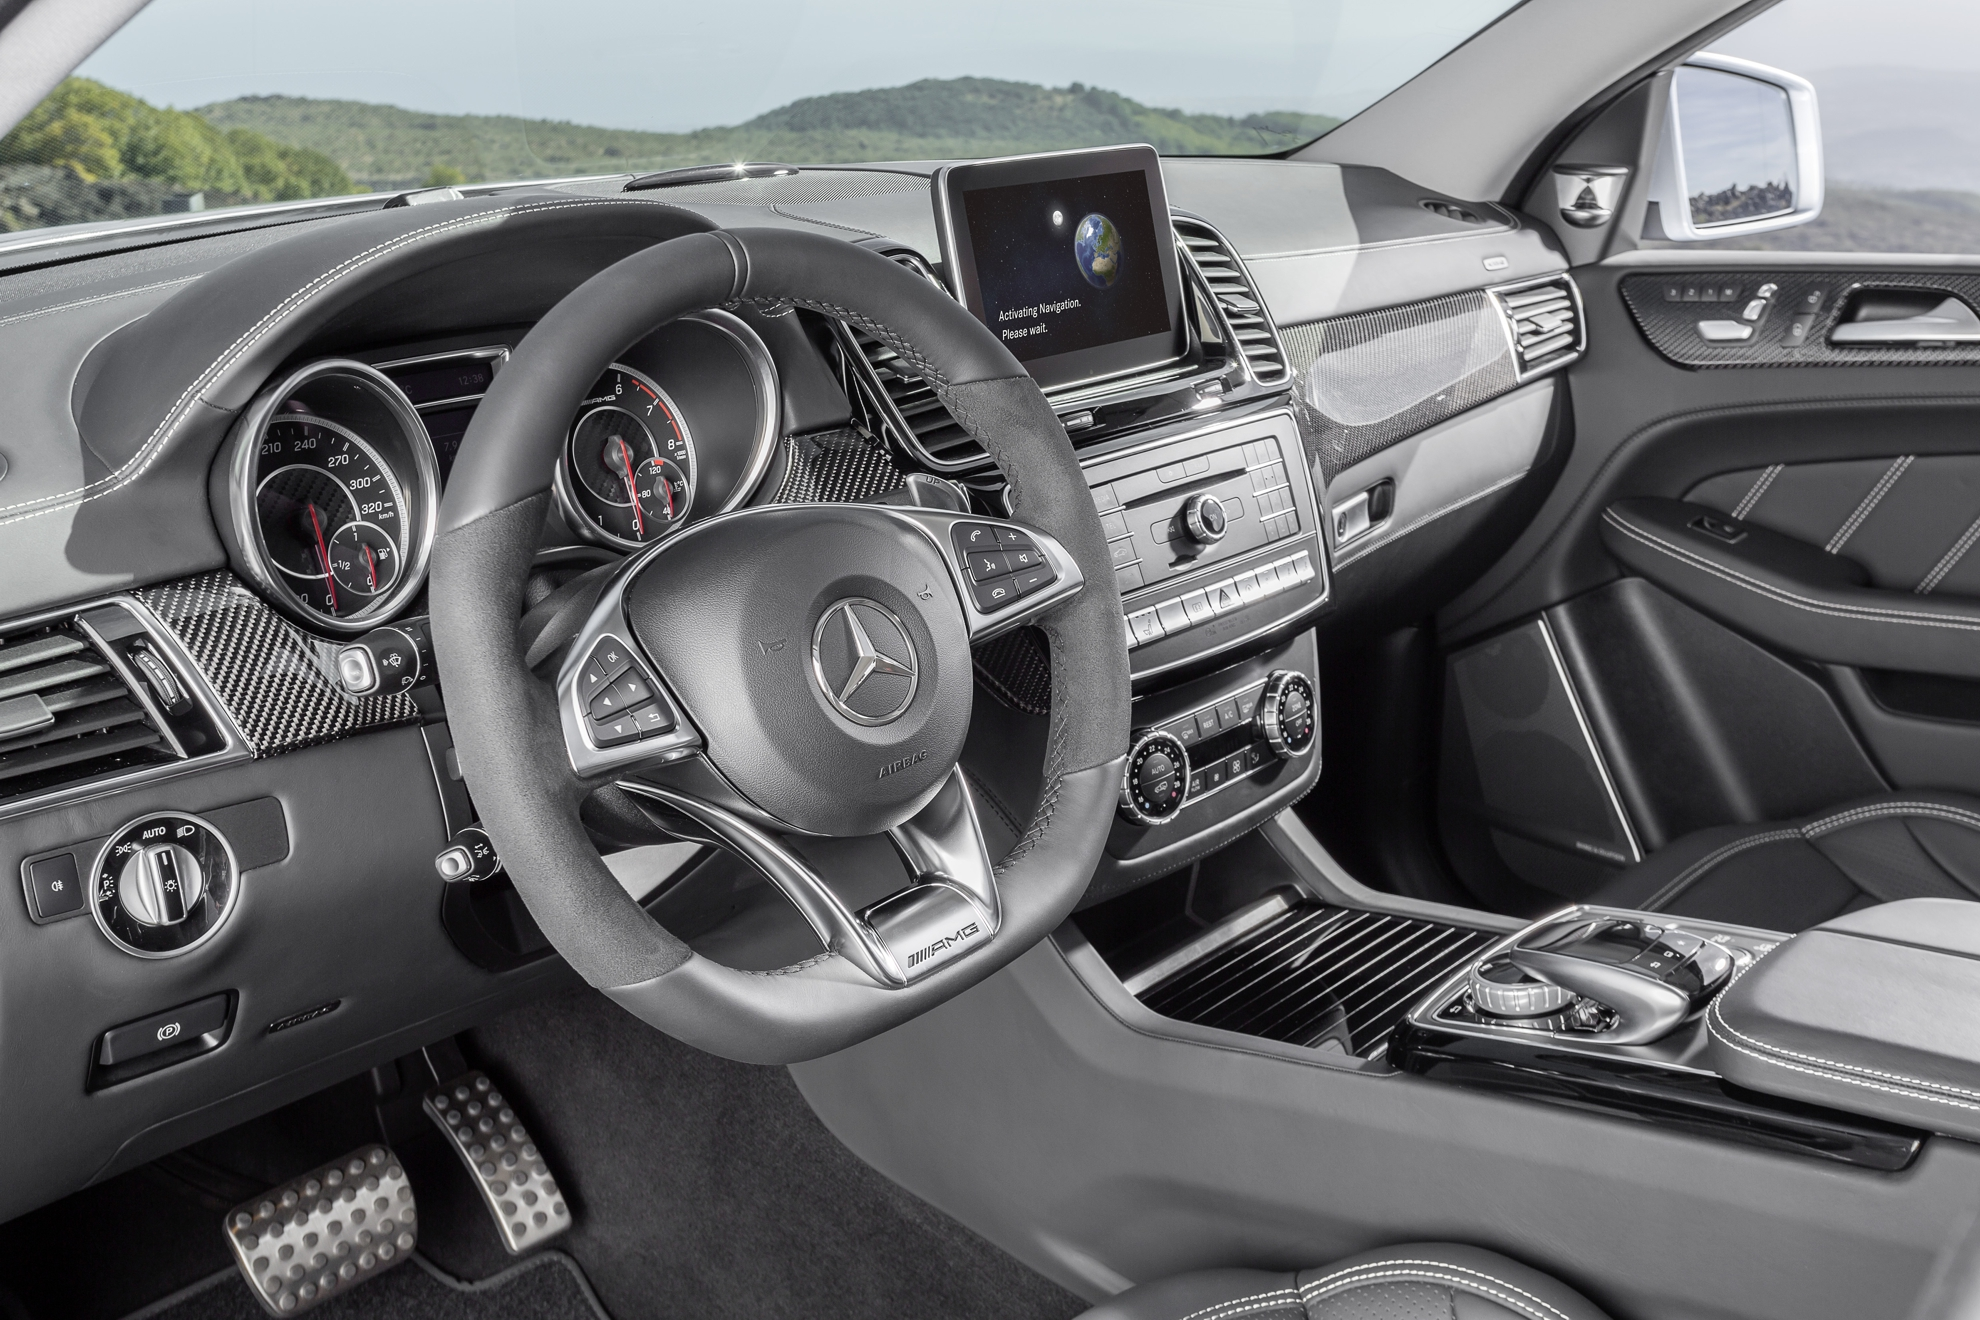 Mercedes-AMG GLE 63 Coupé 4MATIC Premiere at NAIAS 2015 in Detroit